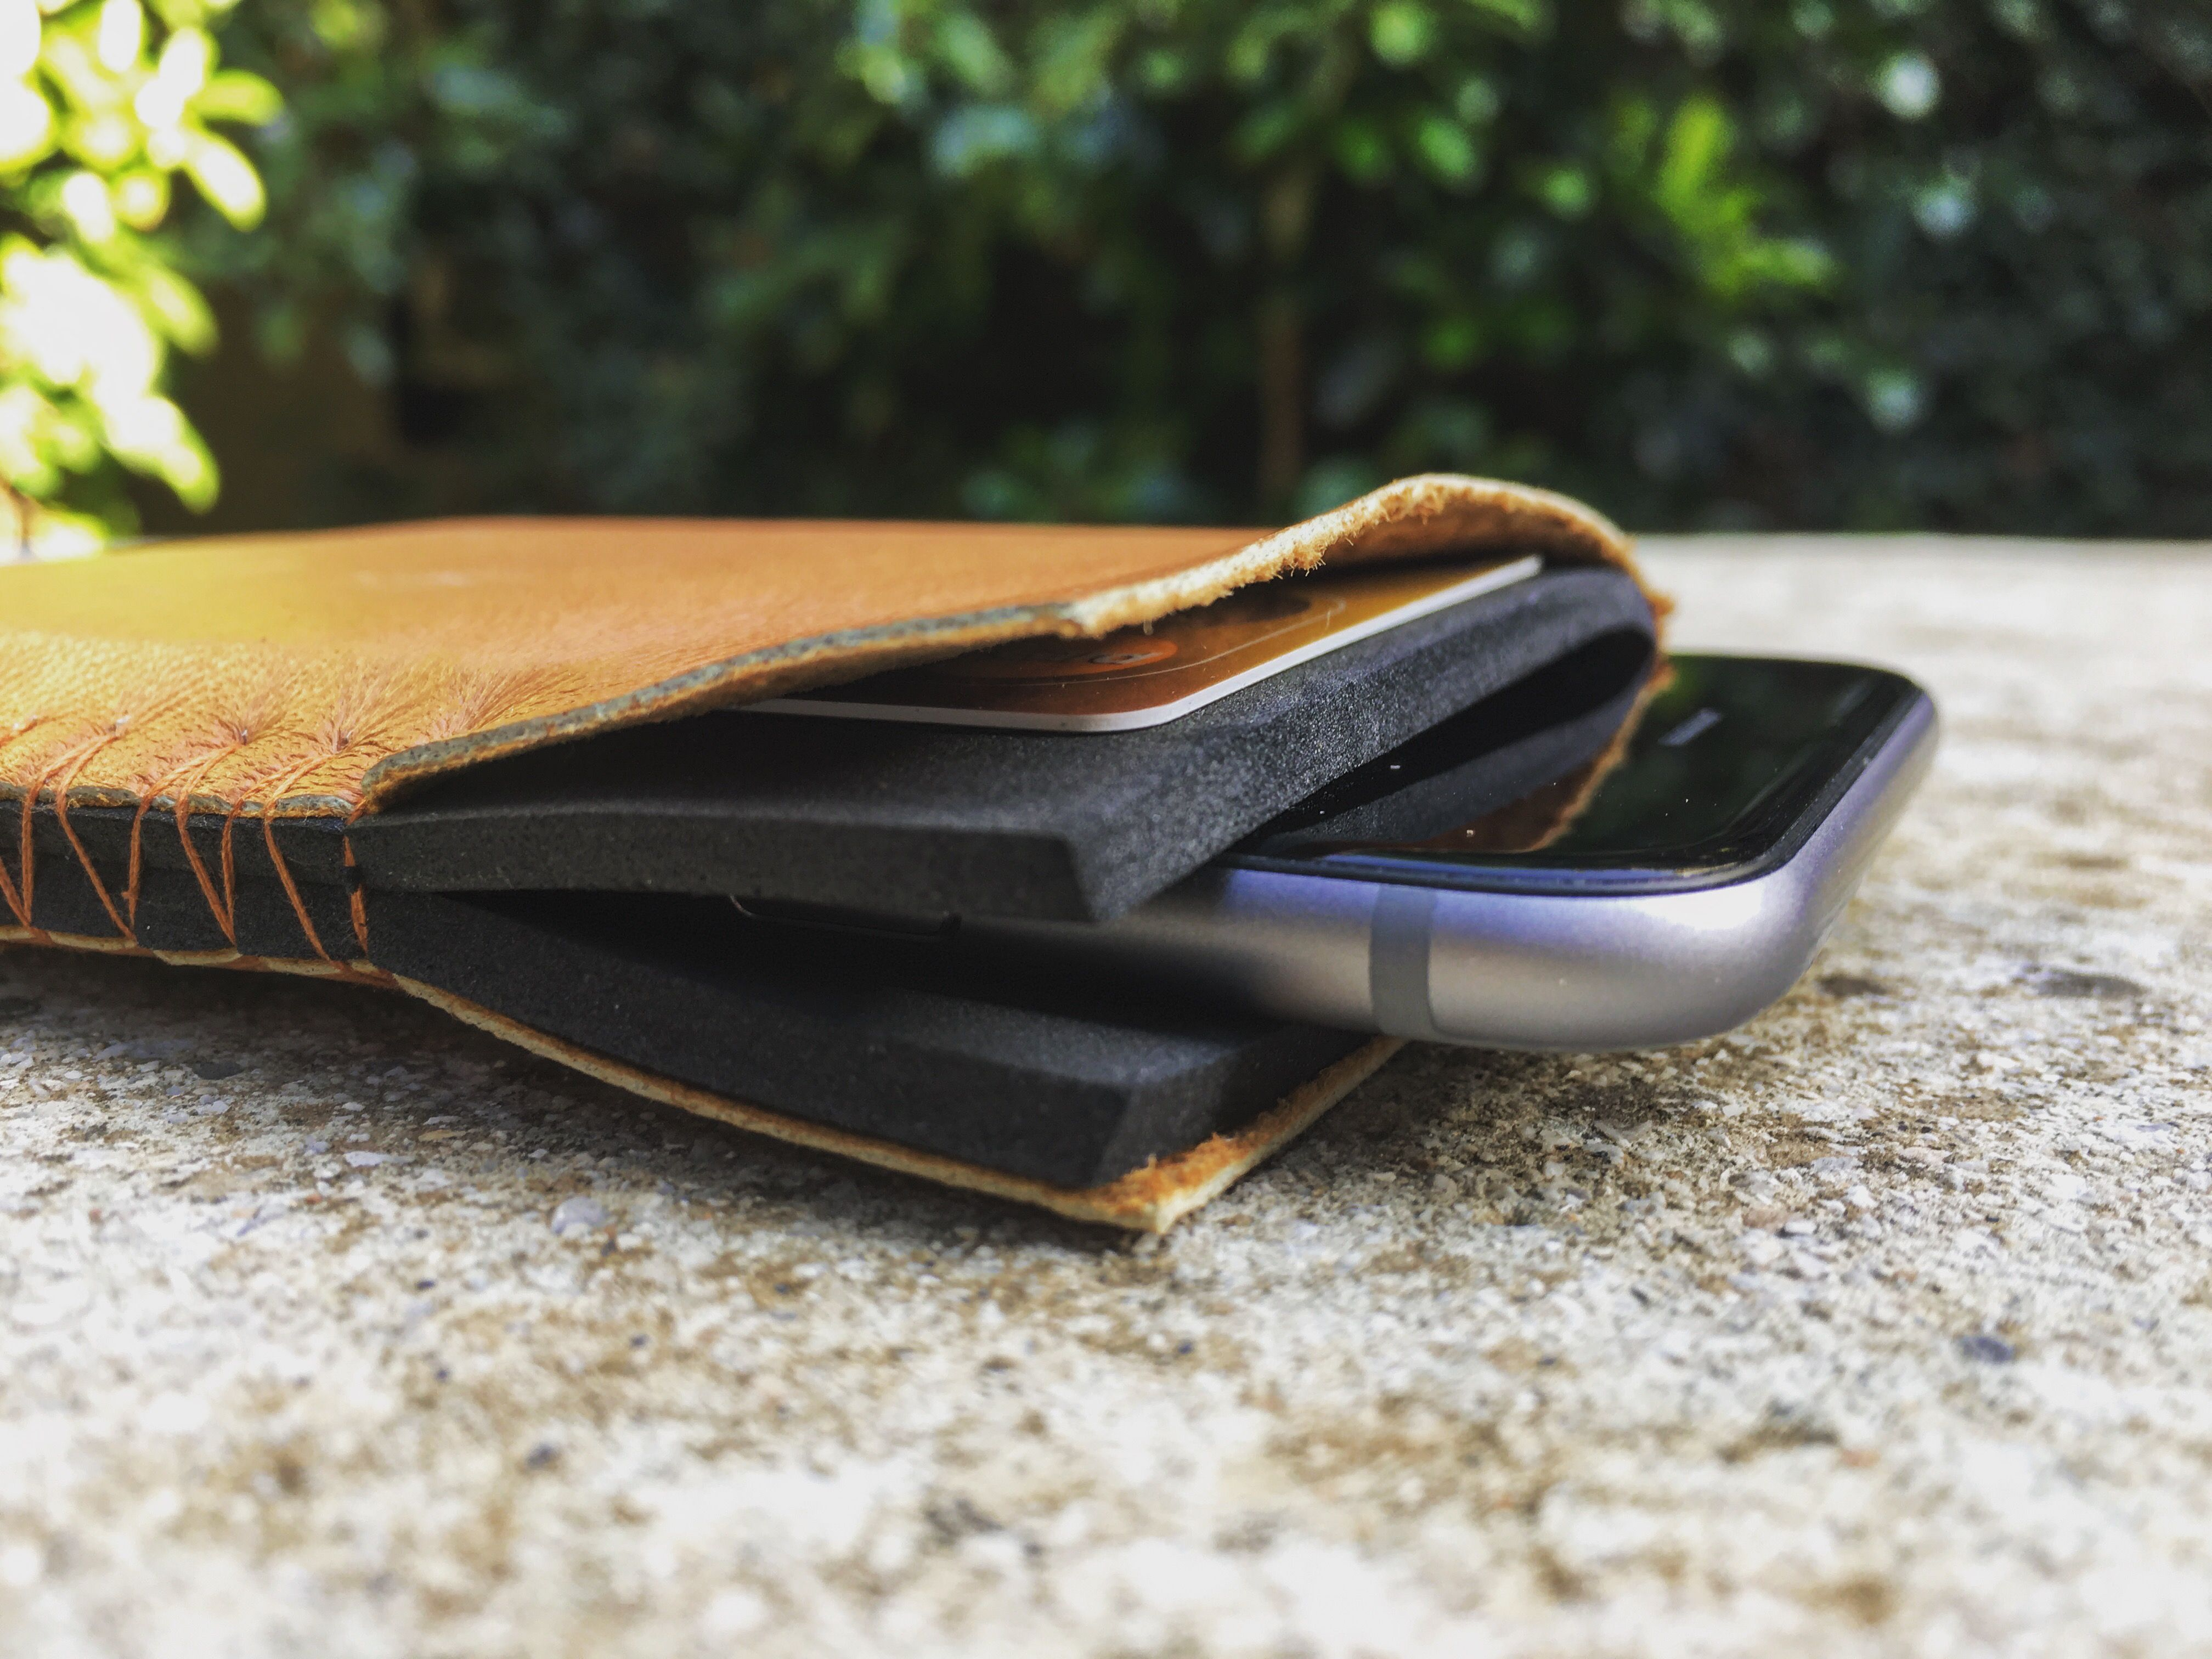 sleeve for iPhone 6/7   www.thisisit.me   #napa #leather #rubberfoam #wateresistand #materials #mensfashion #design #mensaccessories #thisisit #thisisitdaily #thisisitgram #